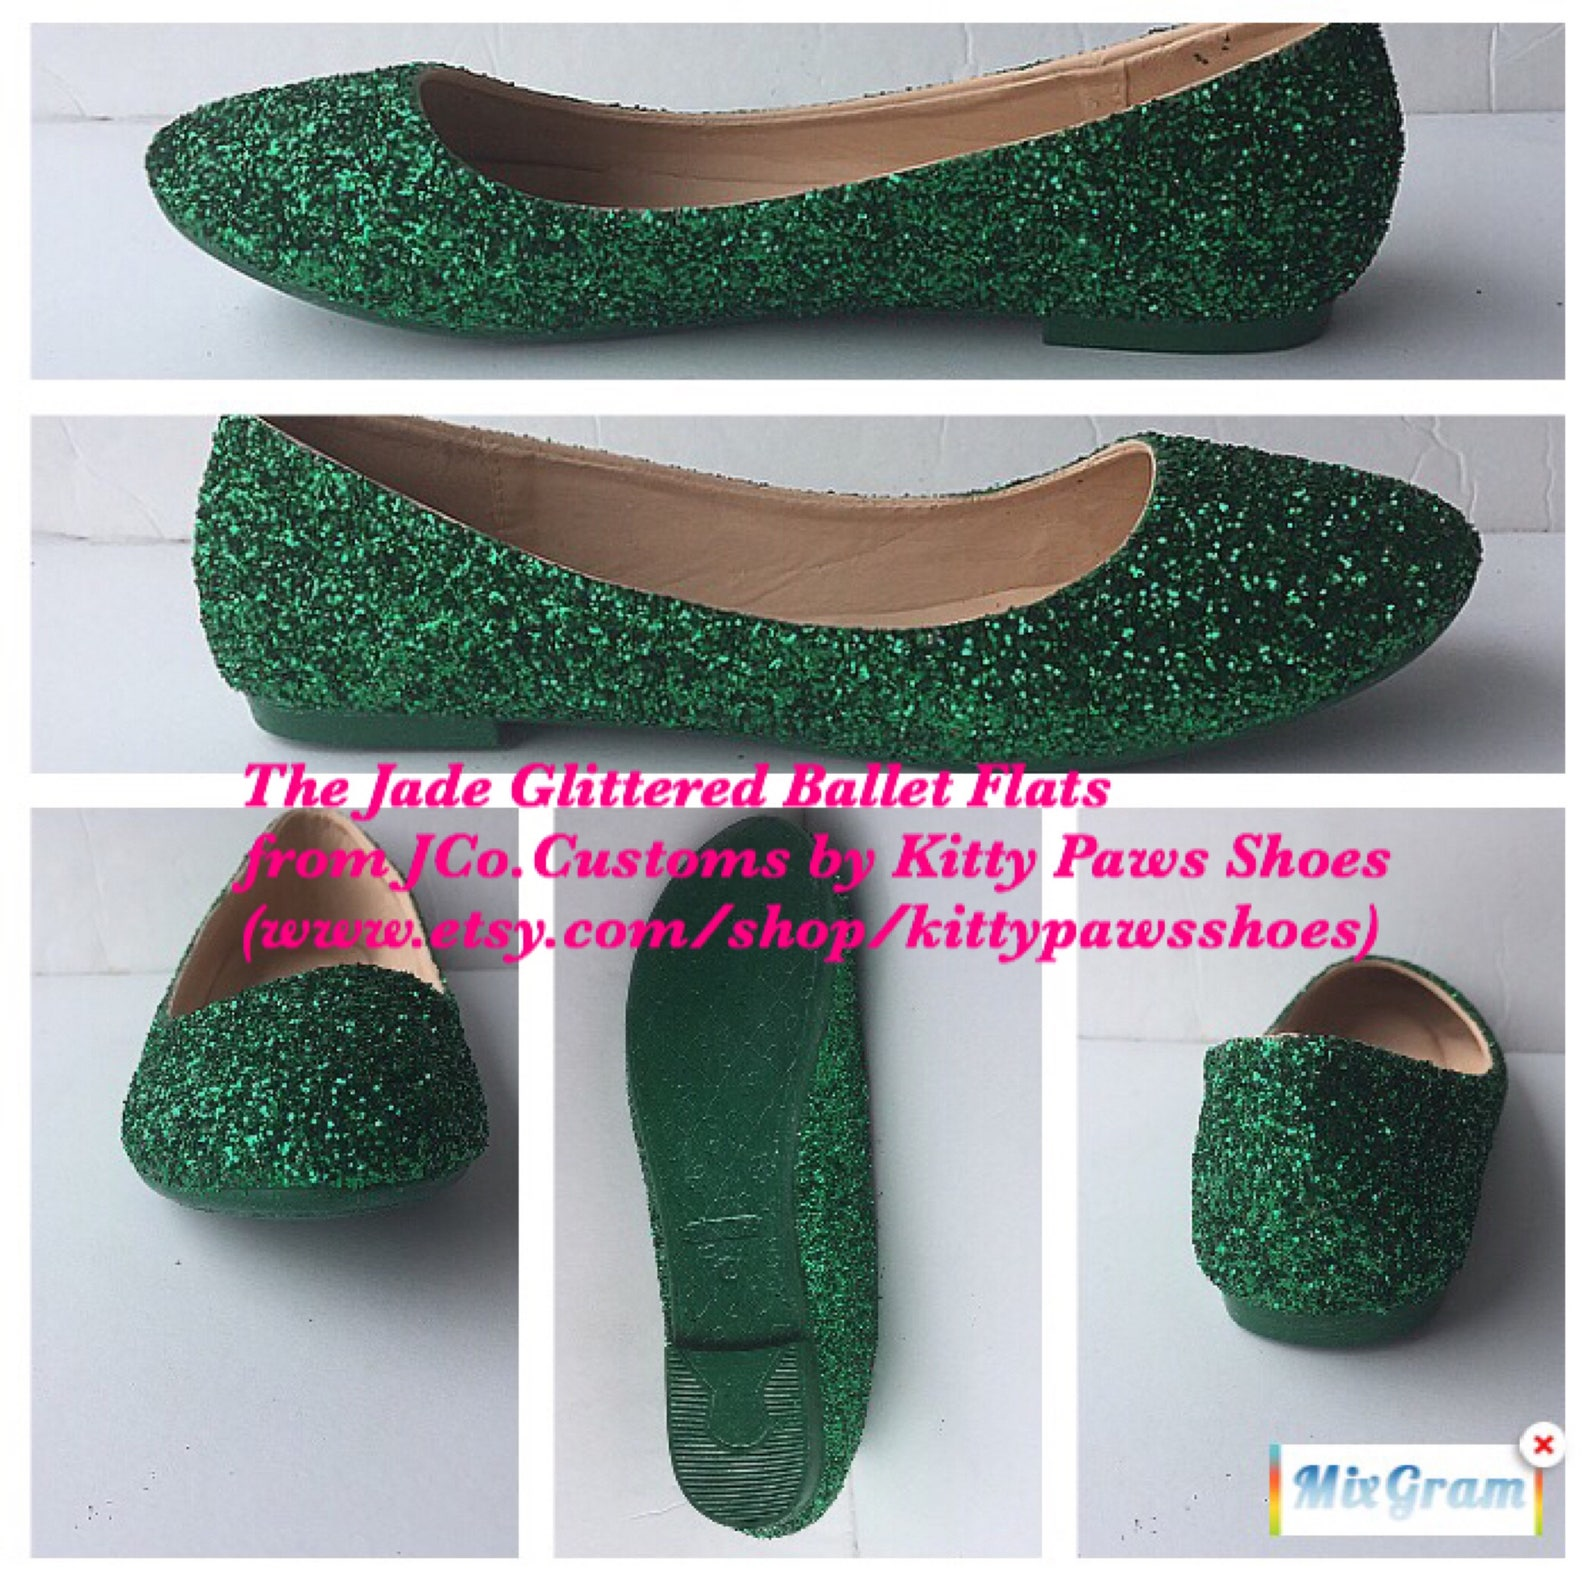 bridal ballet flats emerald green glitter w/ emerald green sparkled bottoms *free u.s. shipping* jco.customs by kitty paws shoes